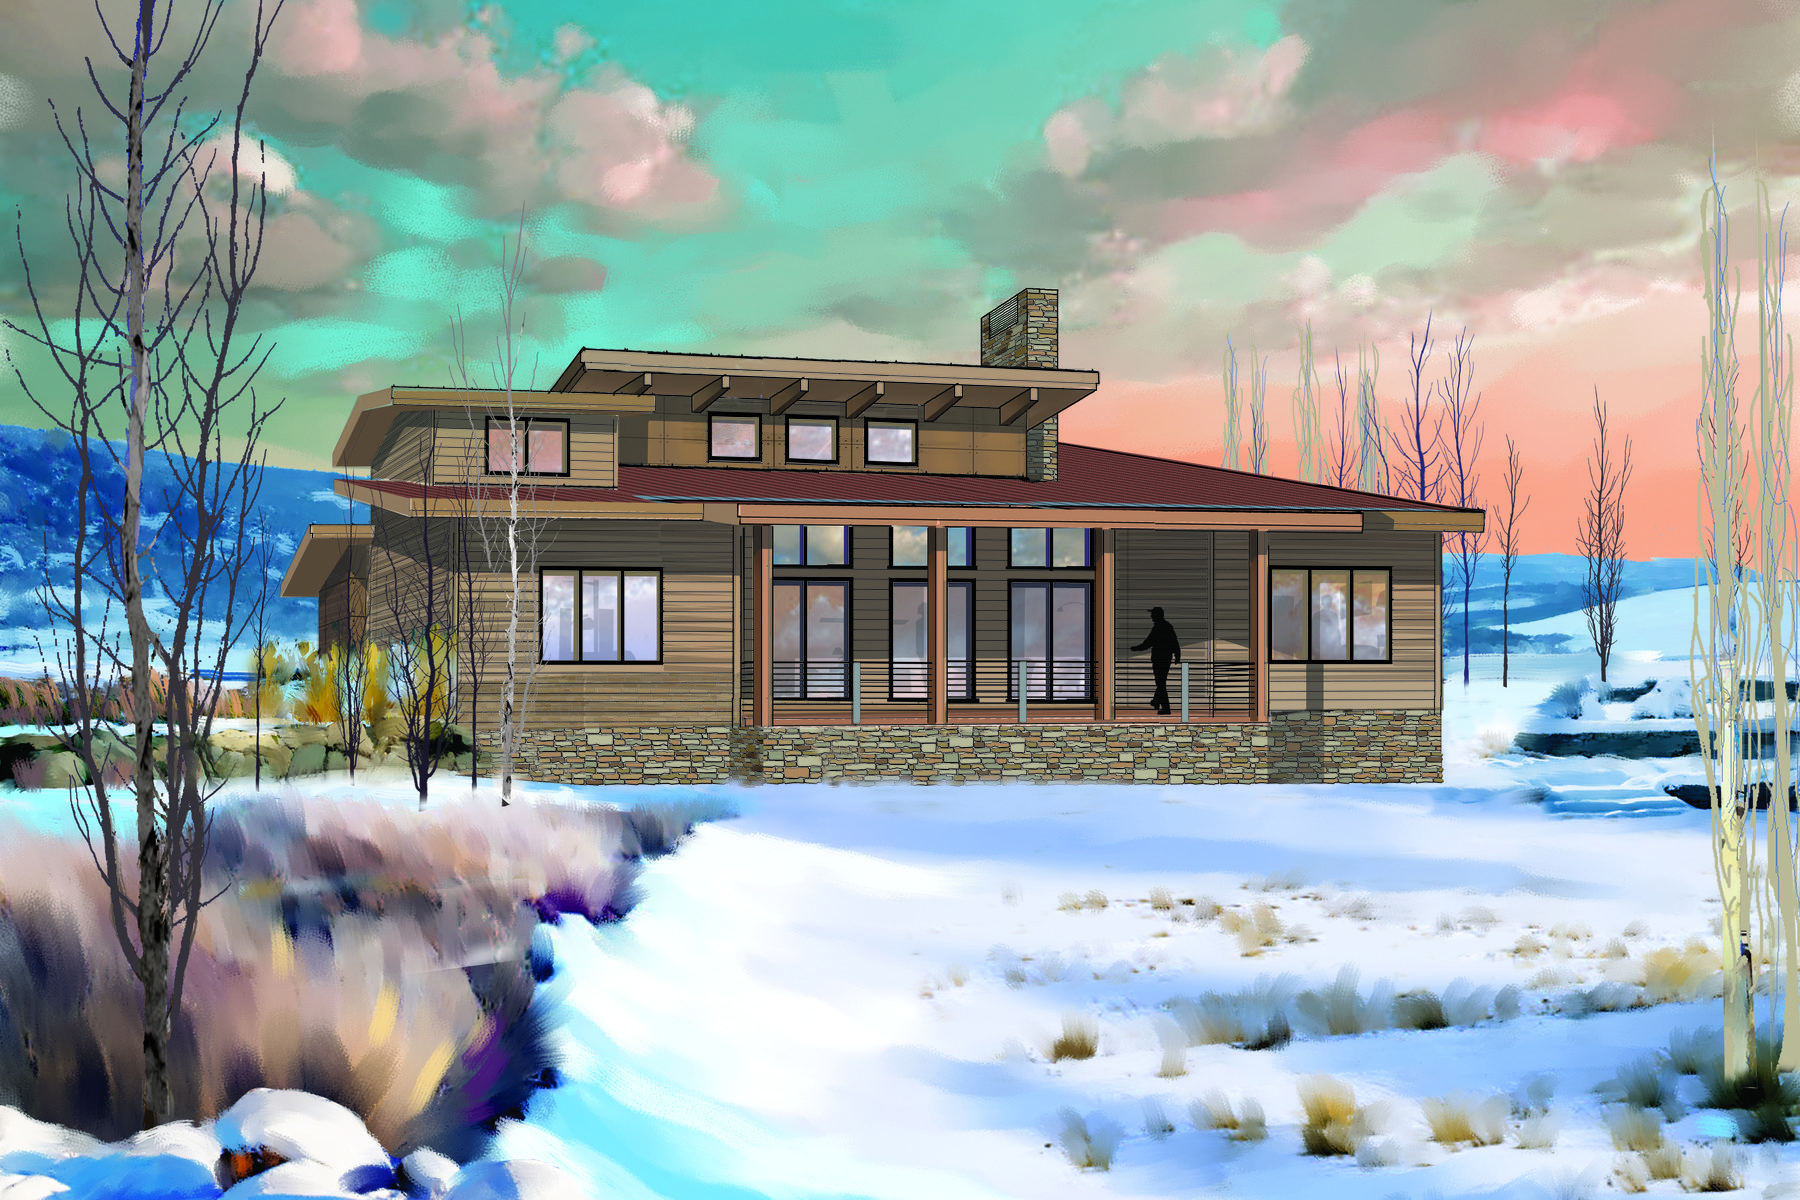 Single Family Home for Sale at New Nicklaus Golf Cabin Promontory 6634 Golden Bear Loop West Park City, Utah, 84098 United States